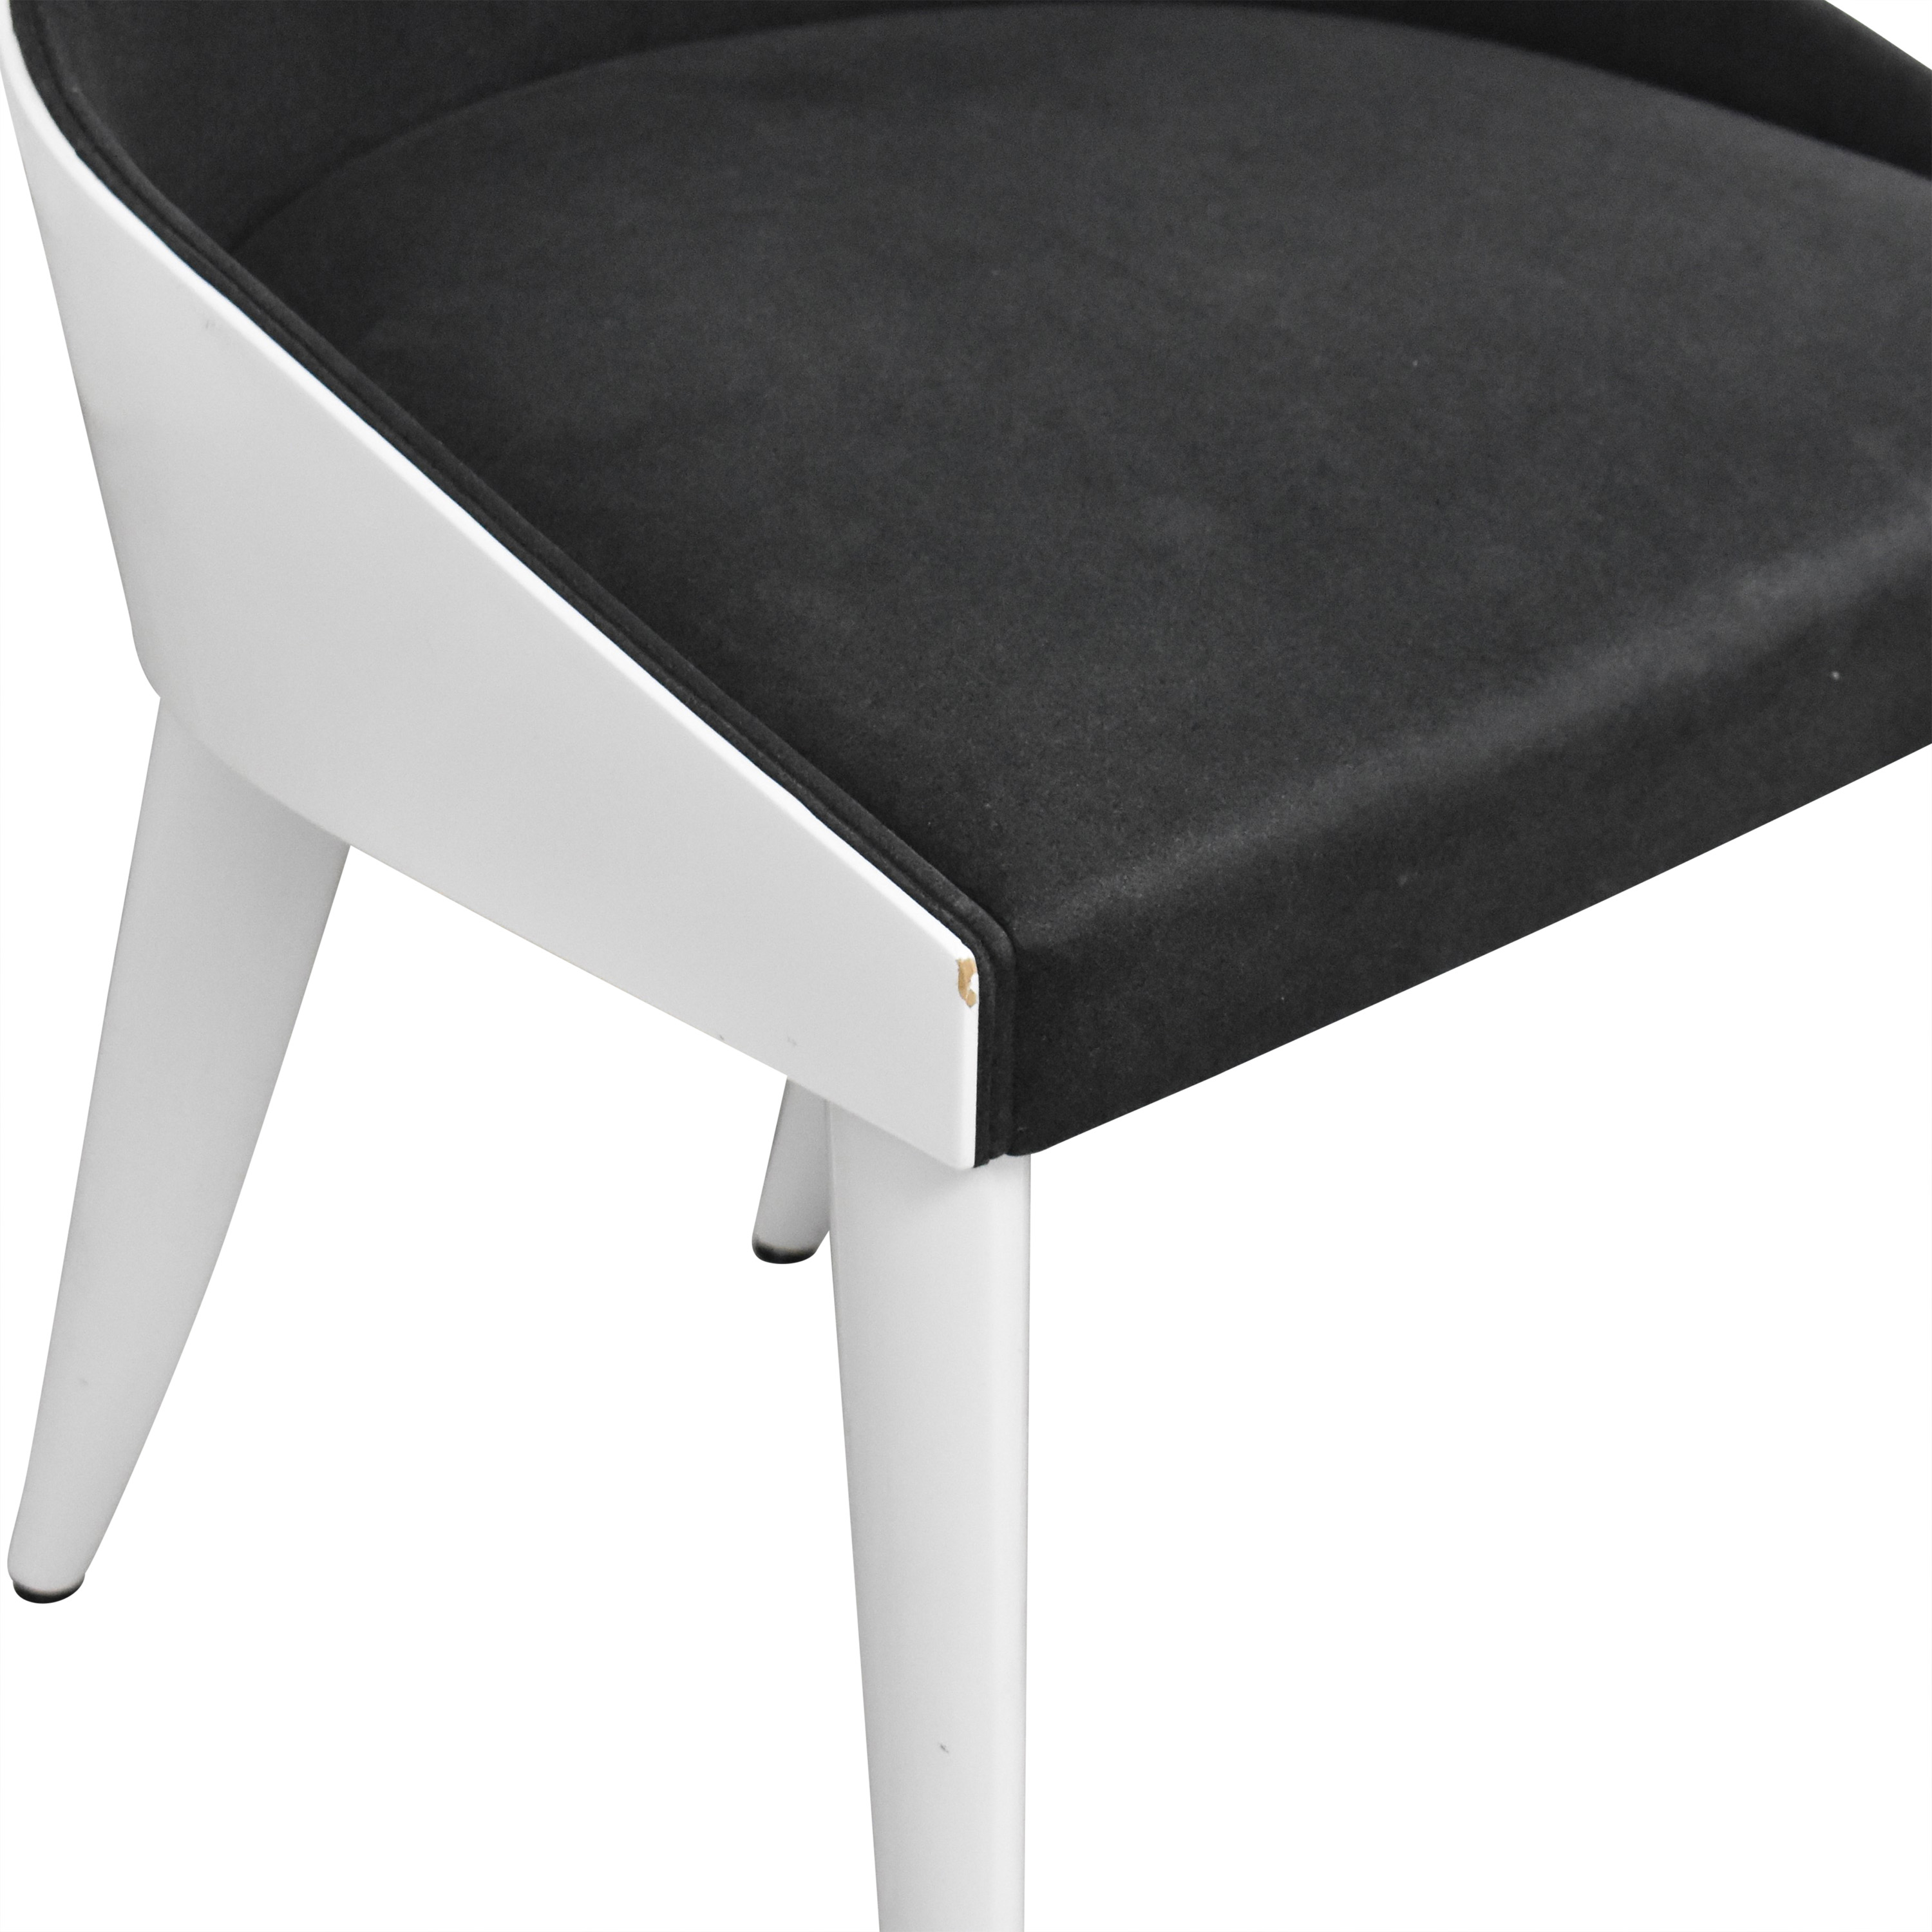 Potocco Potocco Modern Dining Chairs Chairs